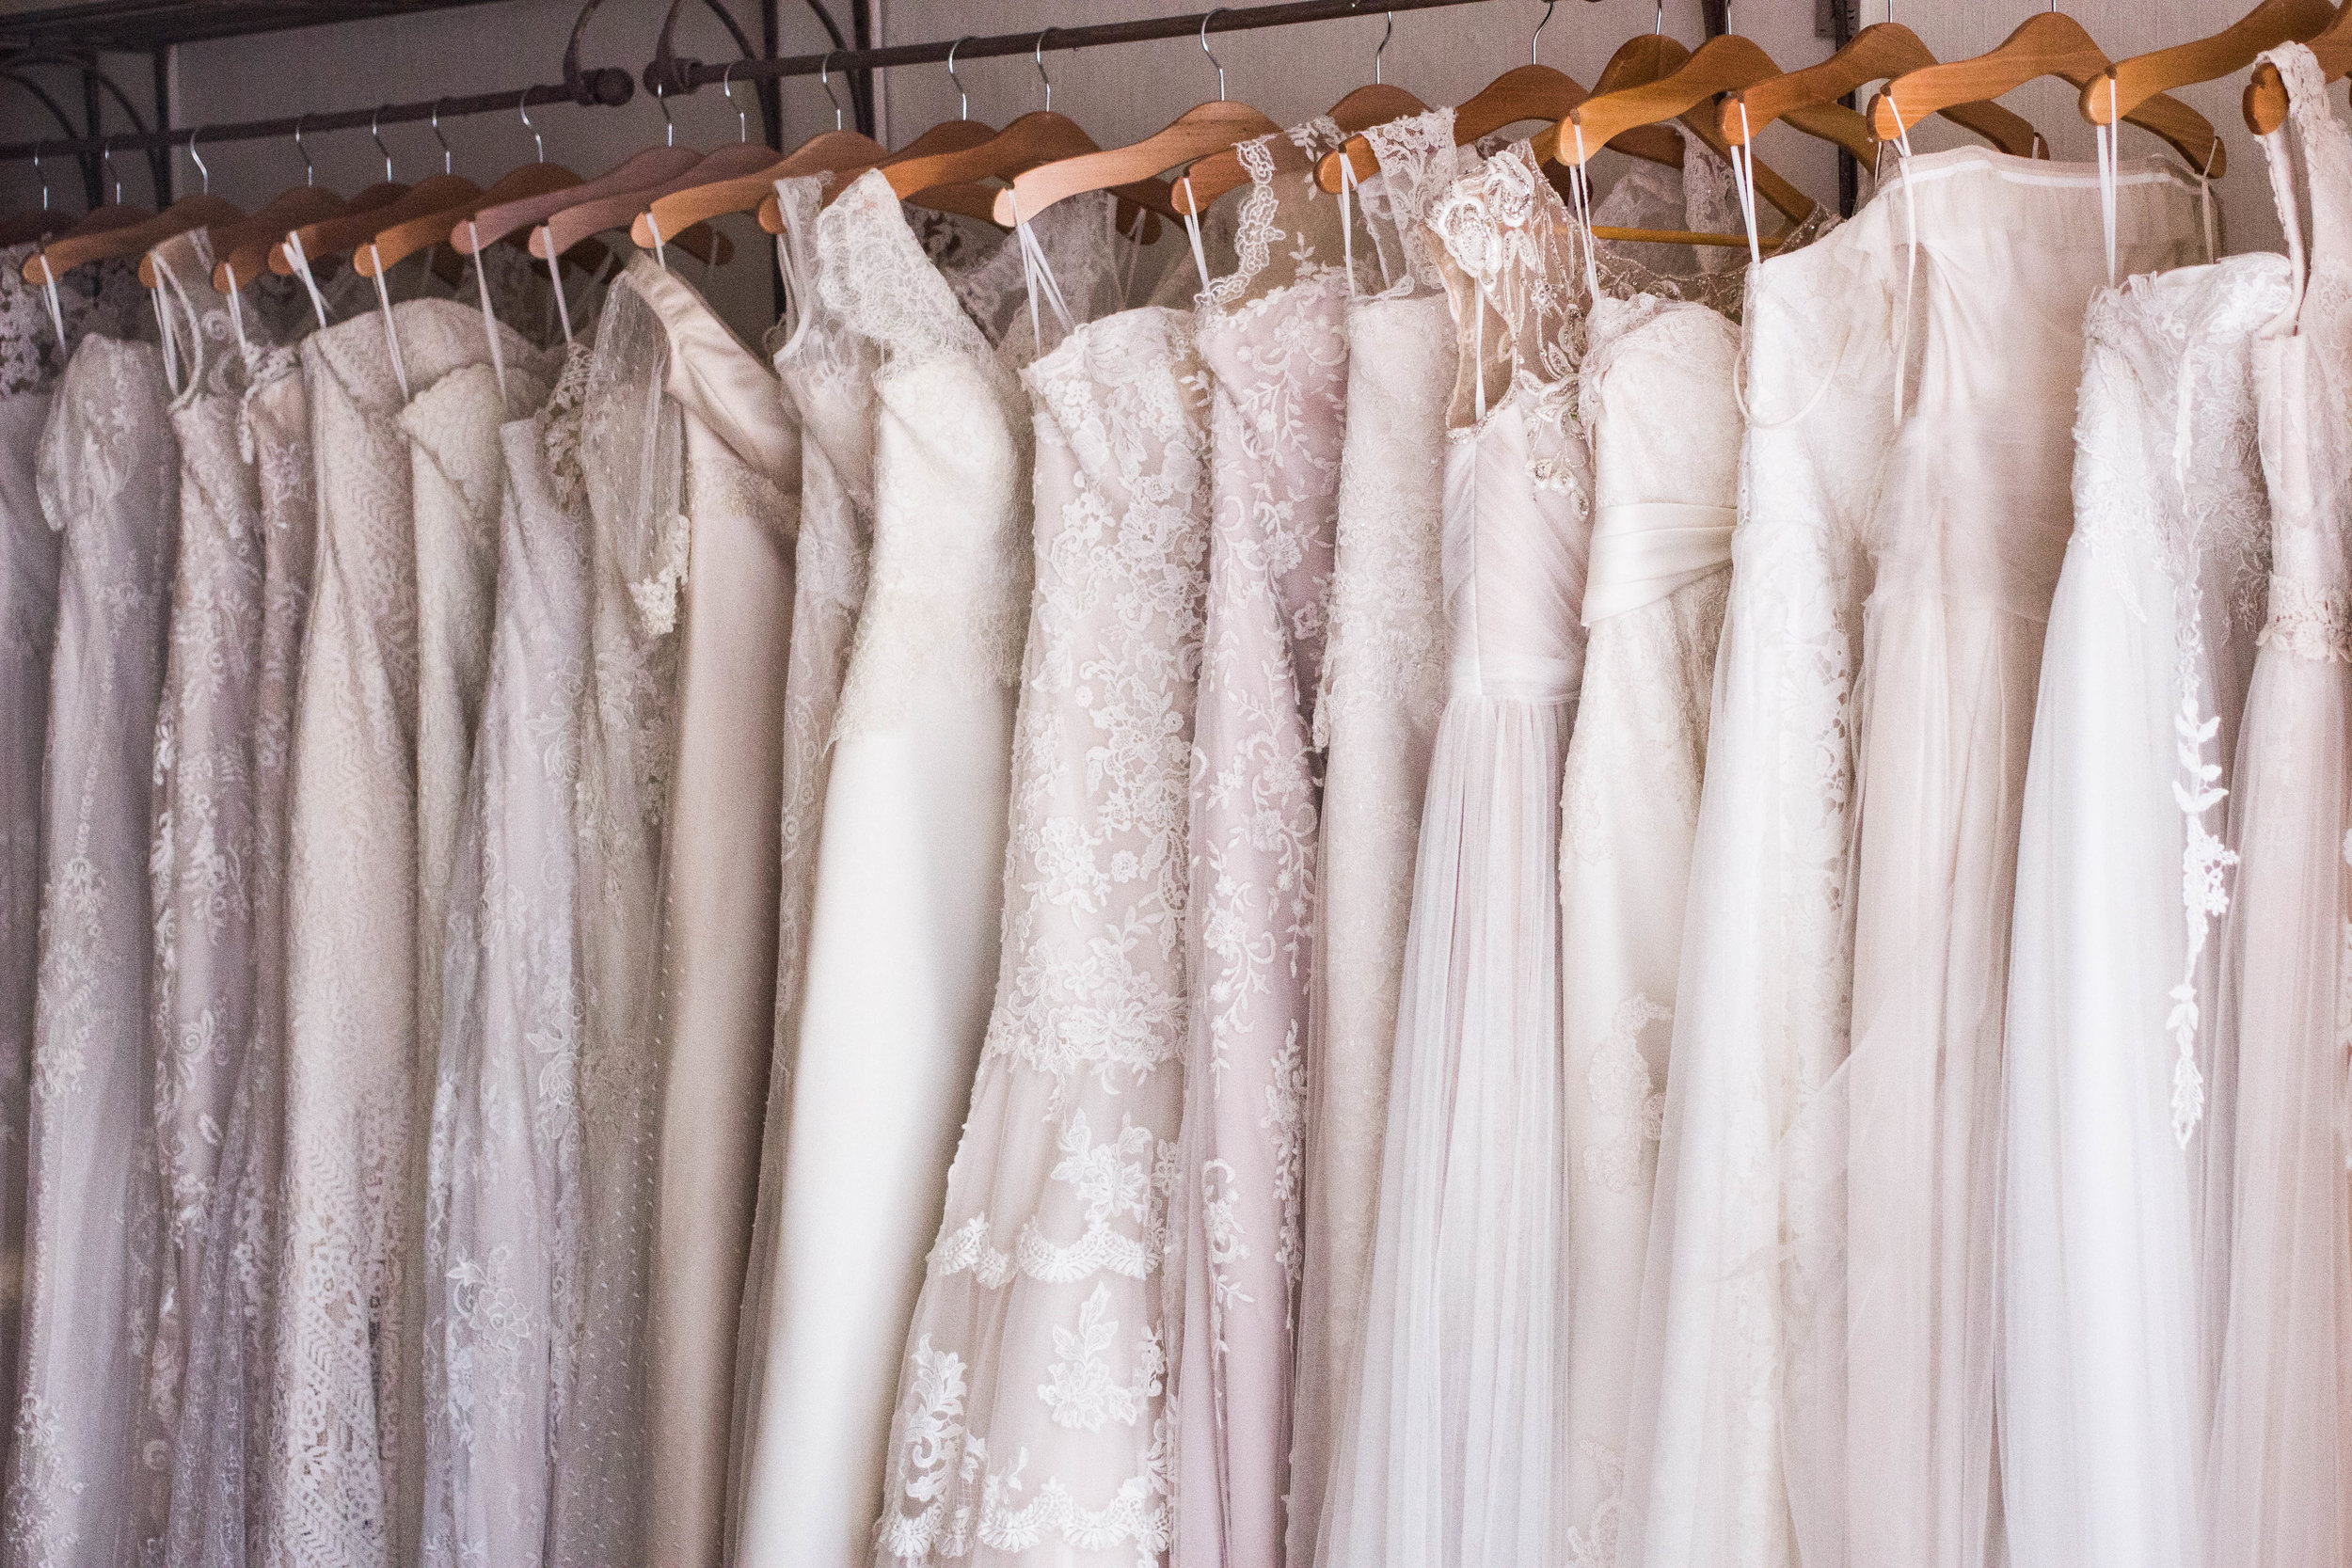 WEDDING DRESSES - Your wedding dress should be timeless & unique, let us find you the bridal of your dreams.